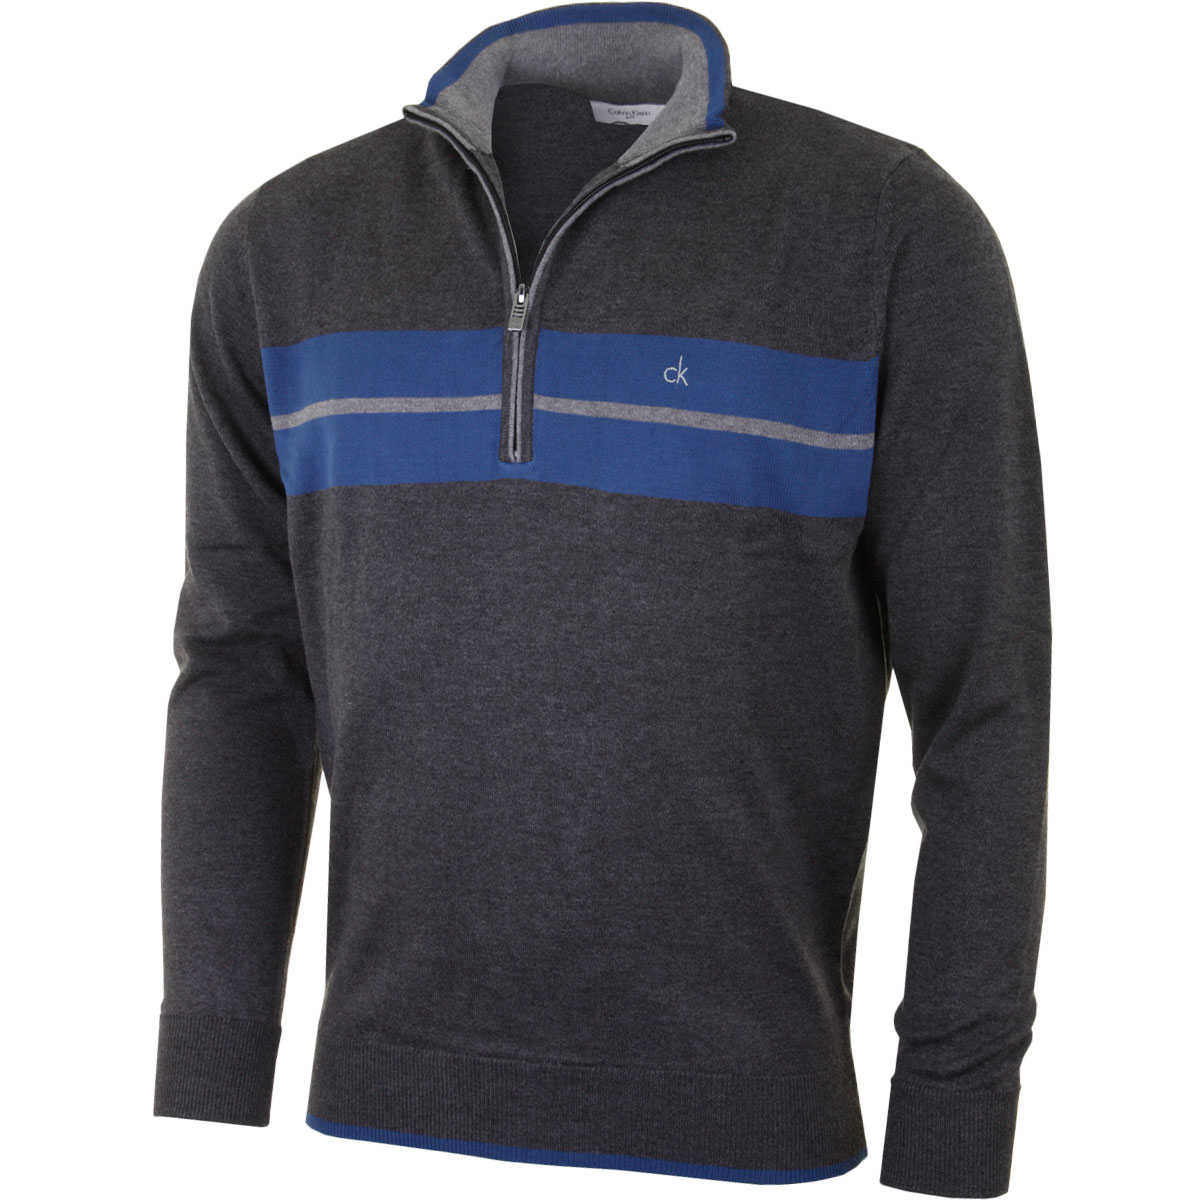 calvin klein golf 2016 mens ck vertex half zip neck sweater pullover top ebay. Black Bedroom Furniture Sets. Home Design Ideas